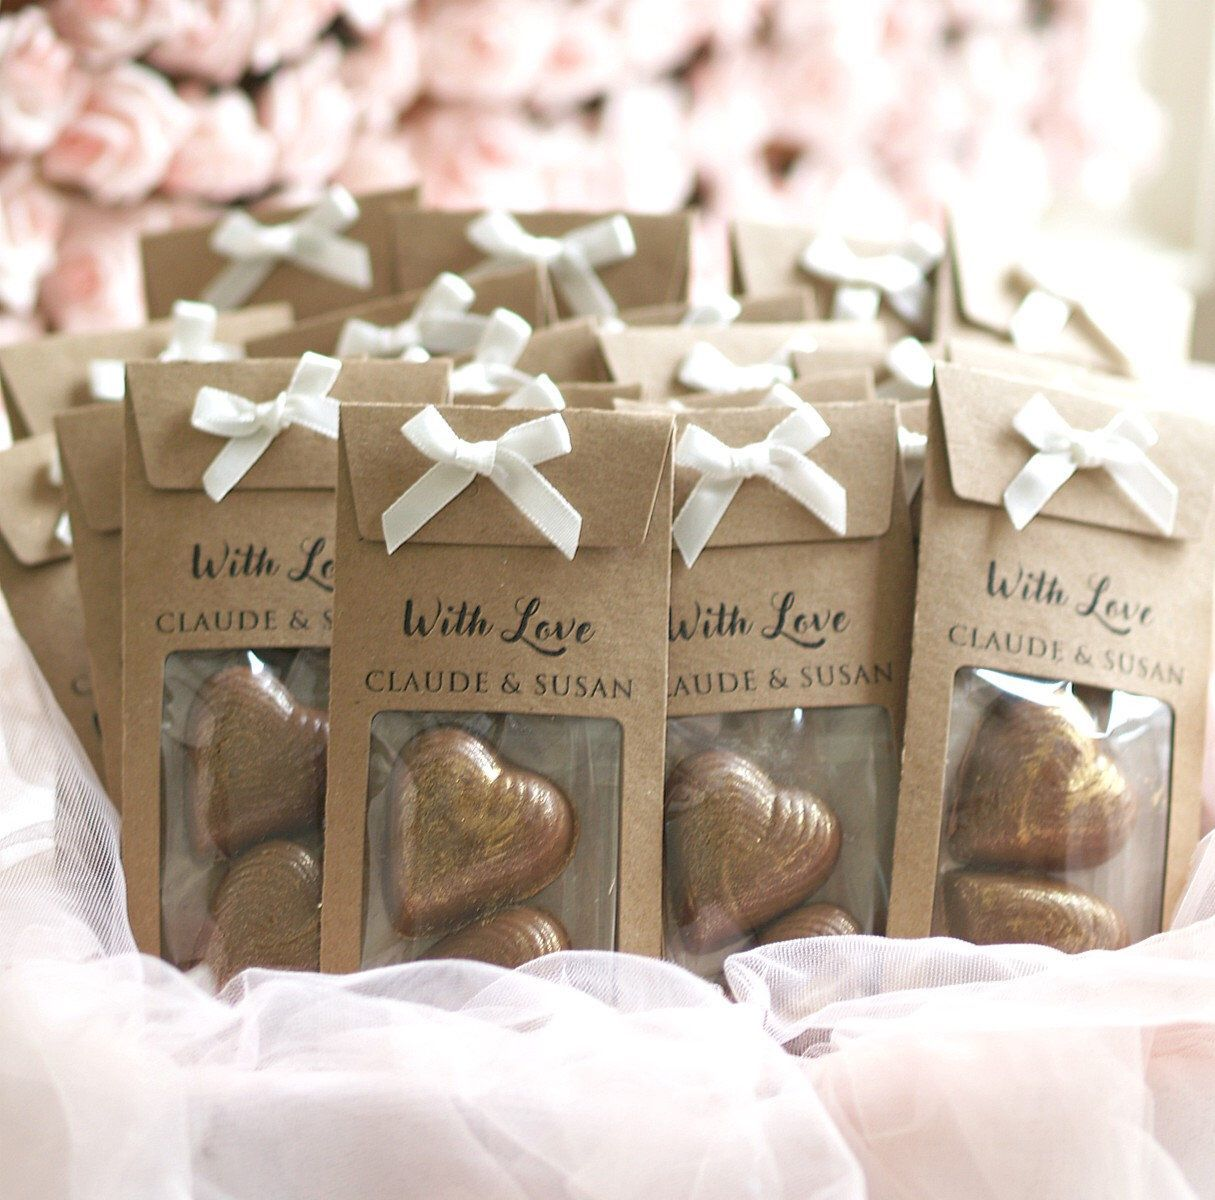 Chocolate Hearts Personalised Wedding Favours With Gold Glitter Party Favors Chocolate Wedding Favors My Wedding Favors Simple Wedding Favors